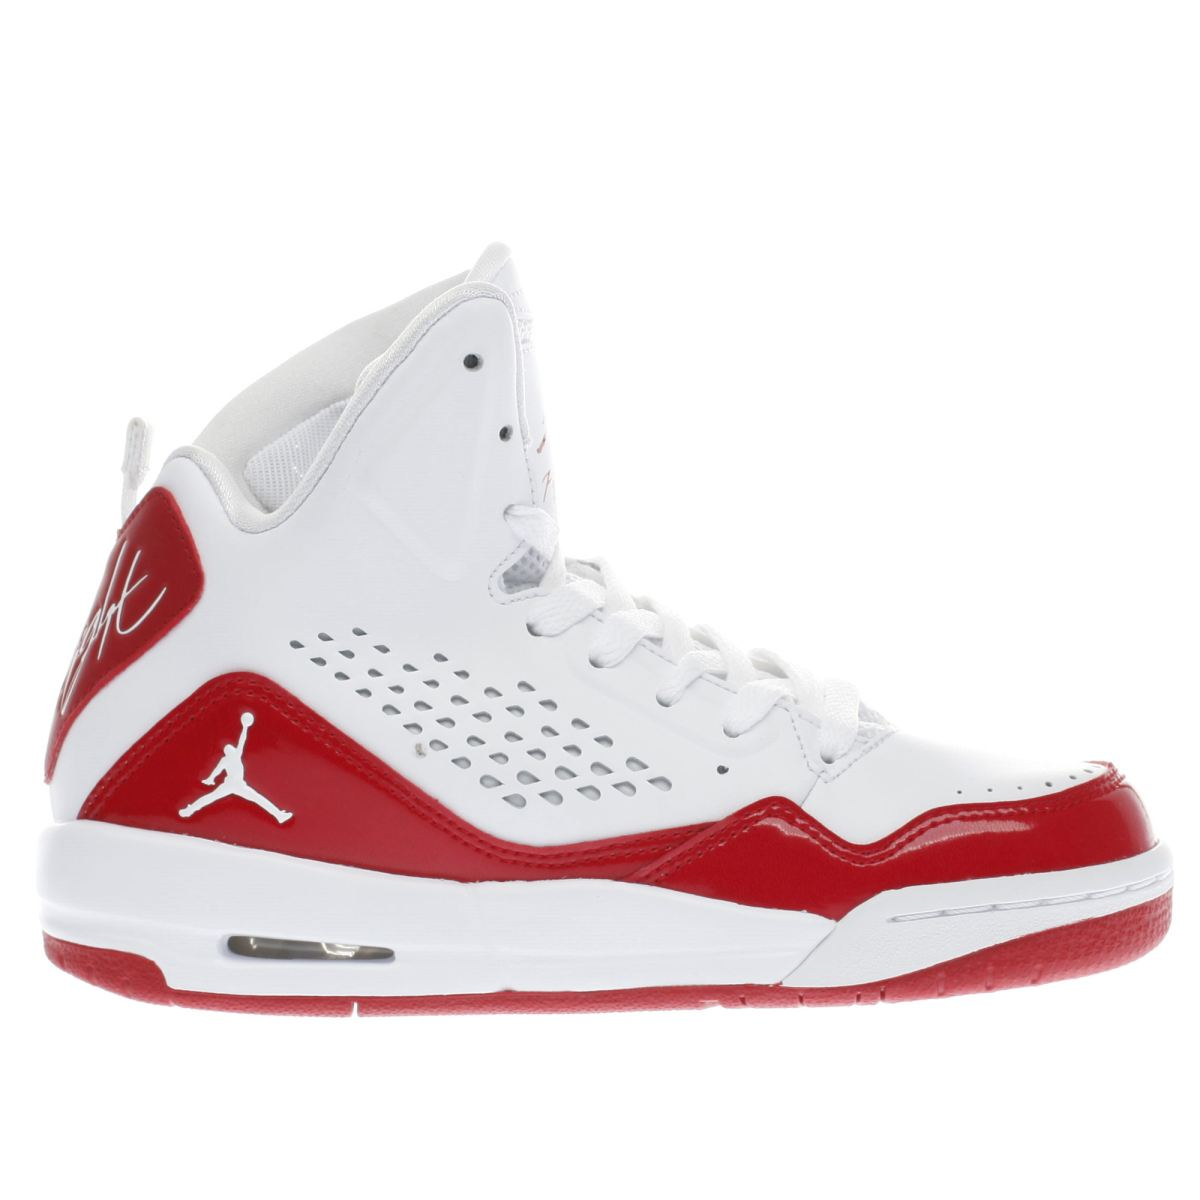 nike jordan white & red sc-3 Boys Youth Trainers